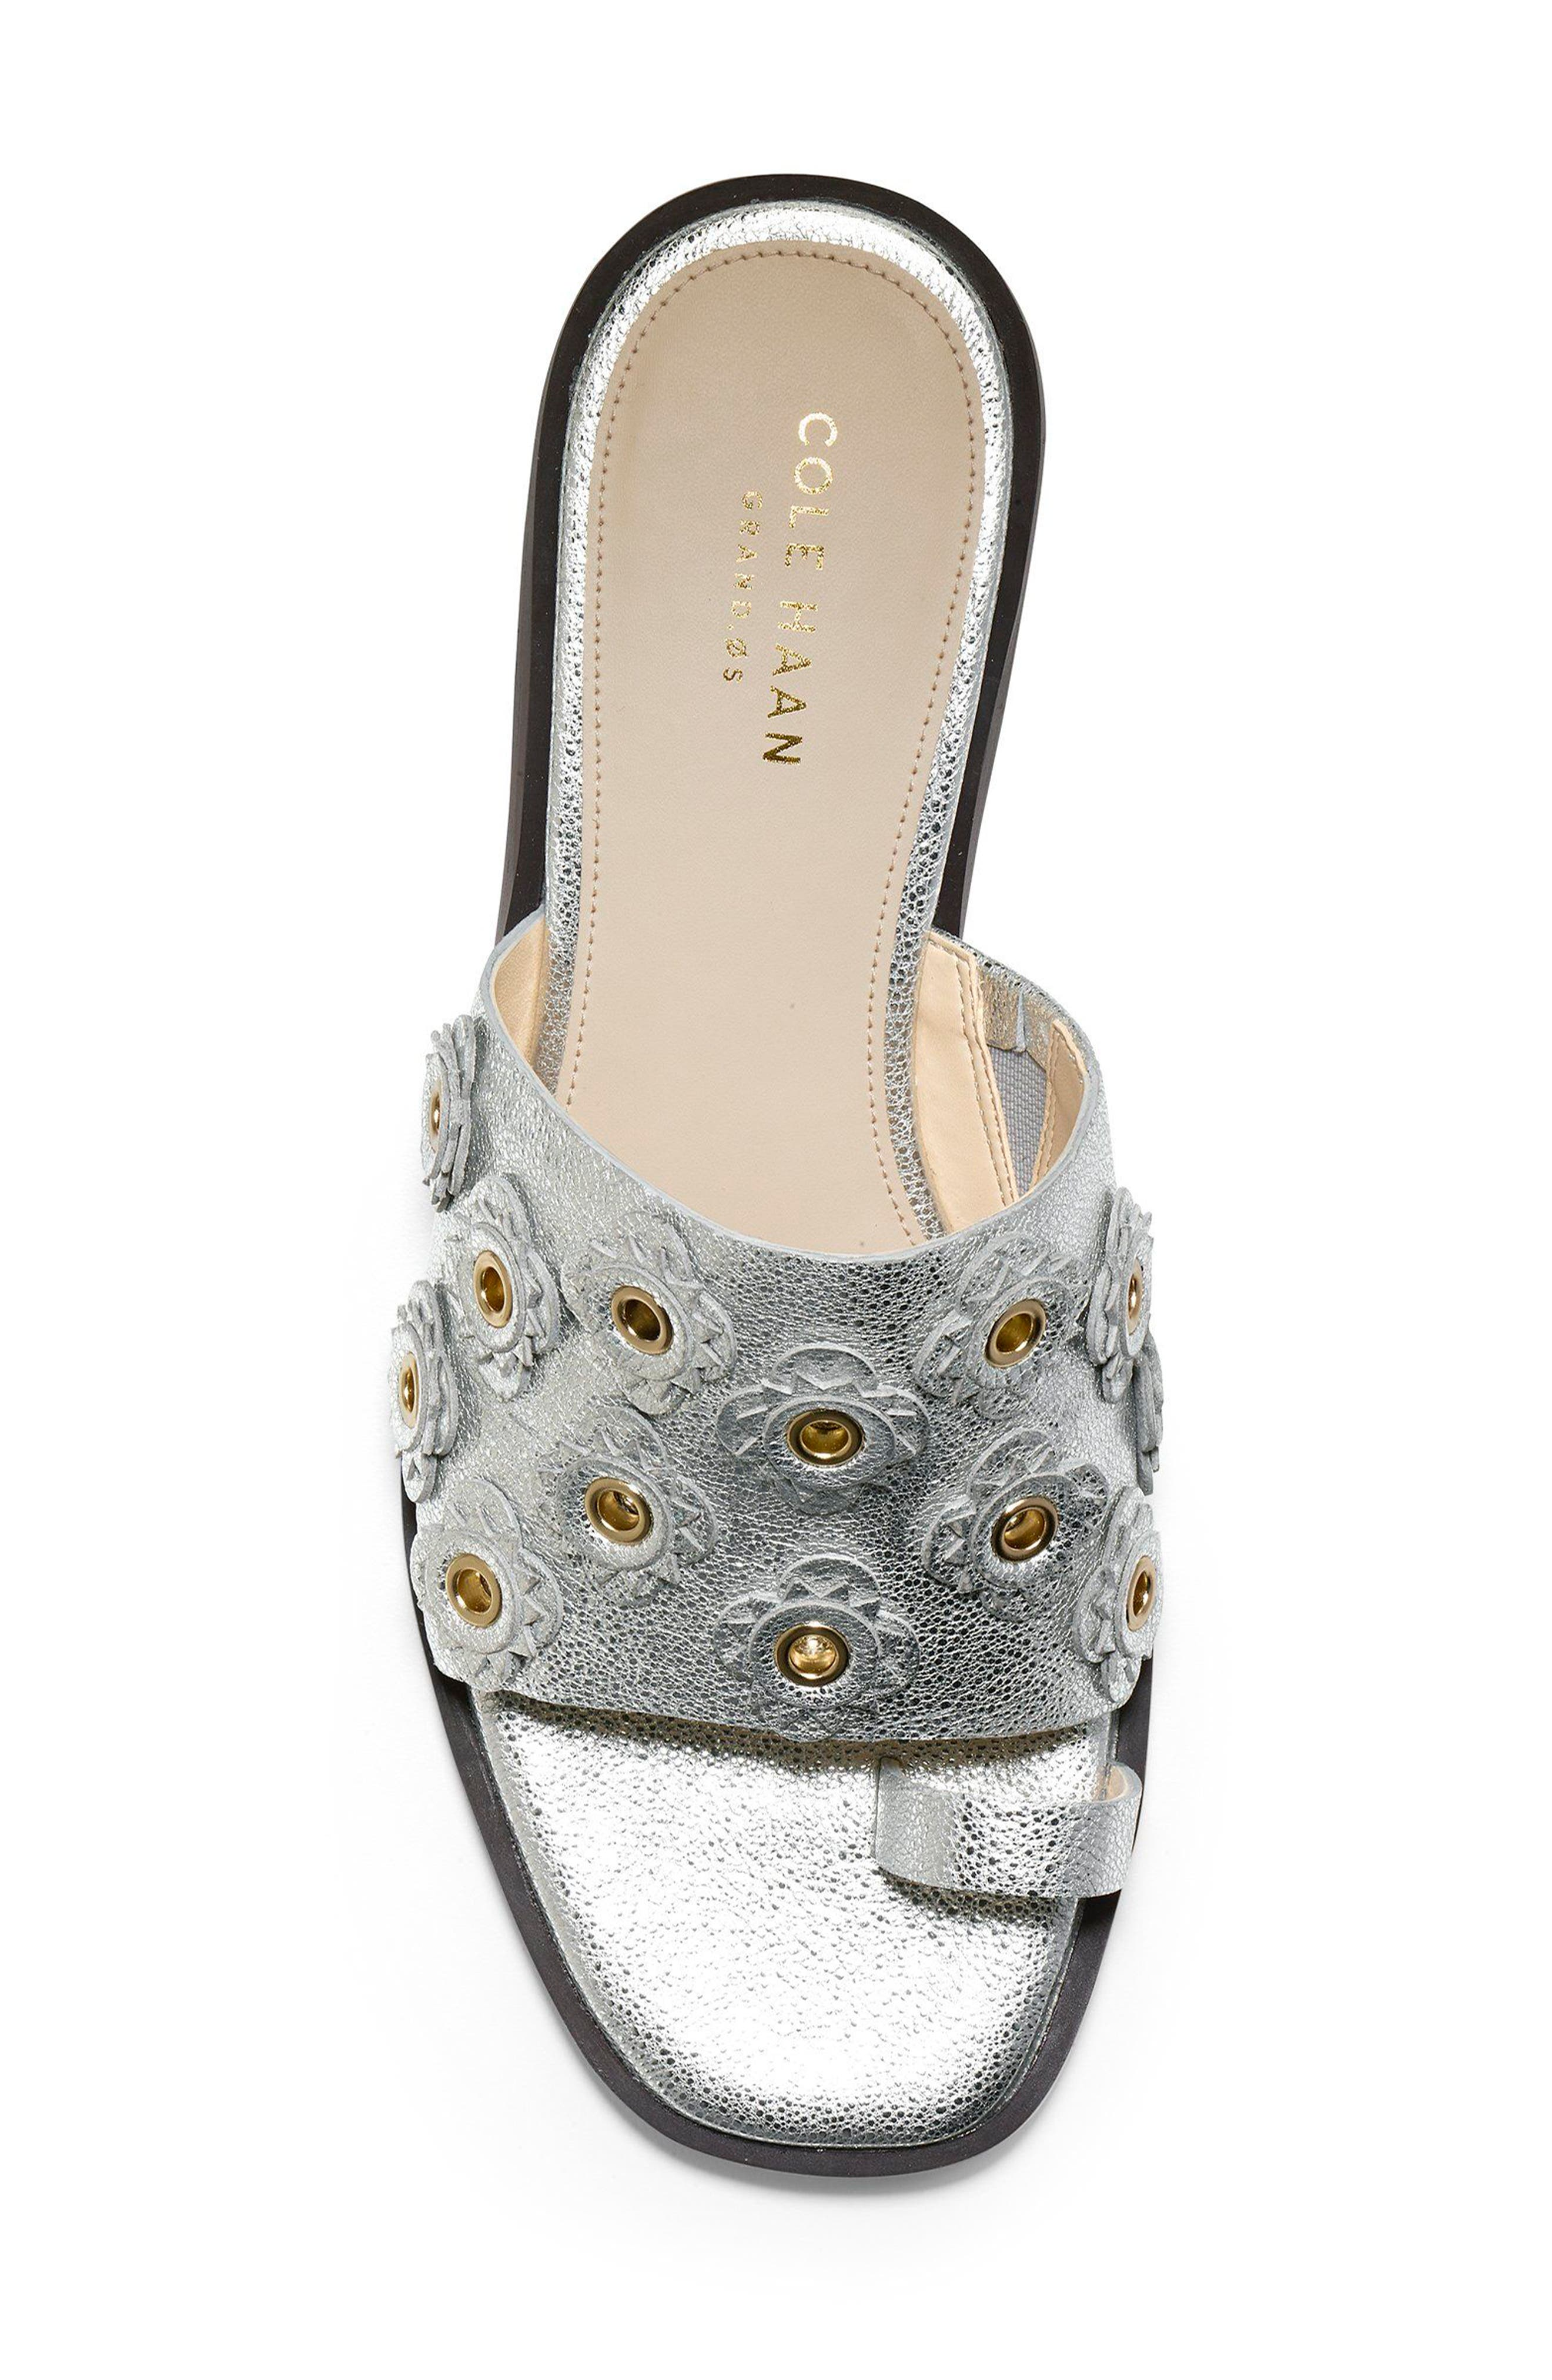 Carly Floral Sandal,                             Alternate thumbnail 5, color,                             SILVER METALLIC LEATHER